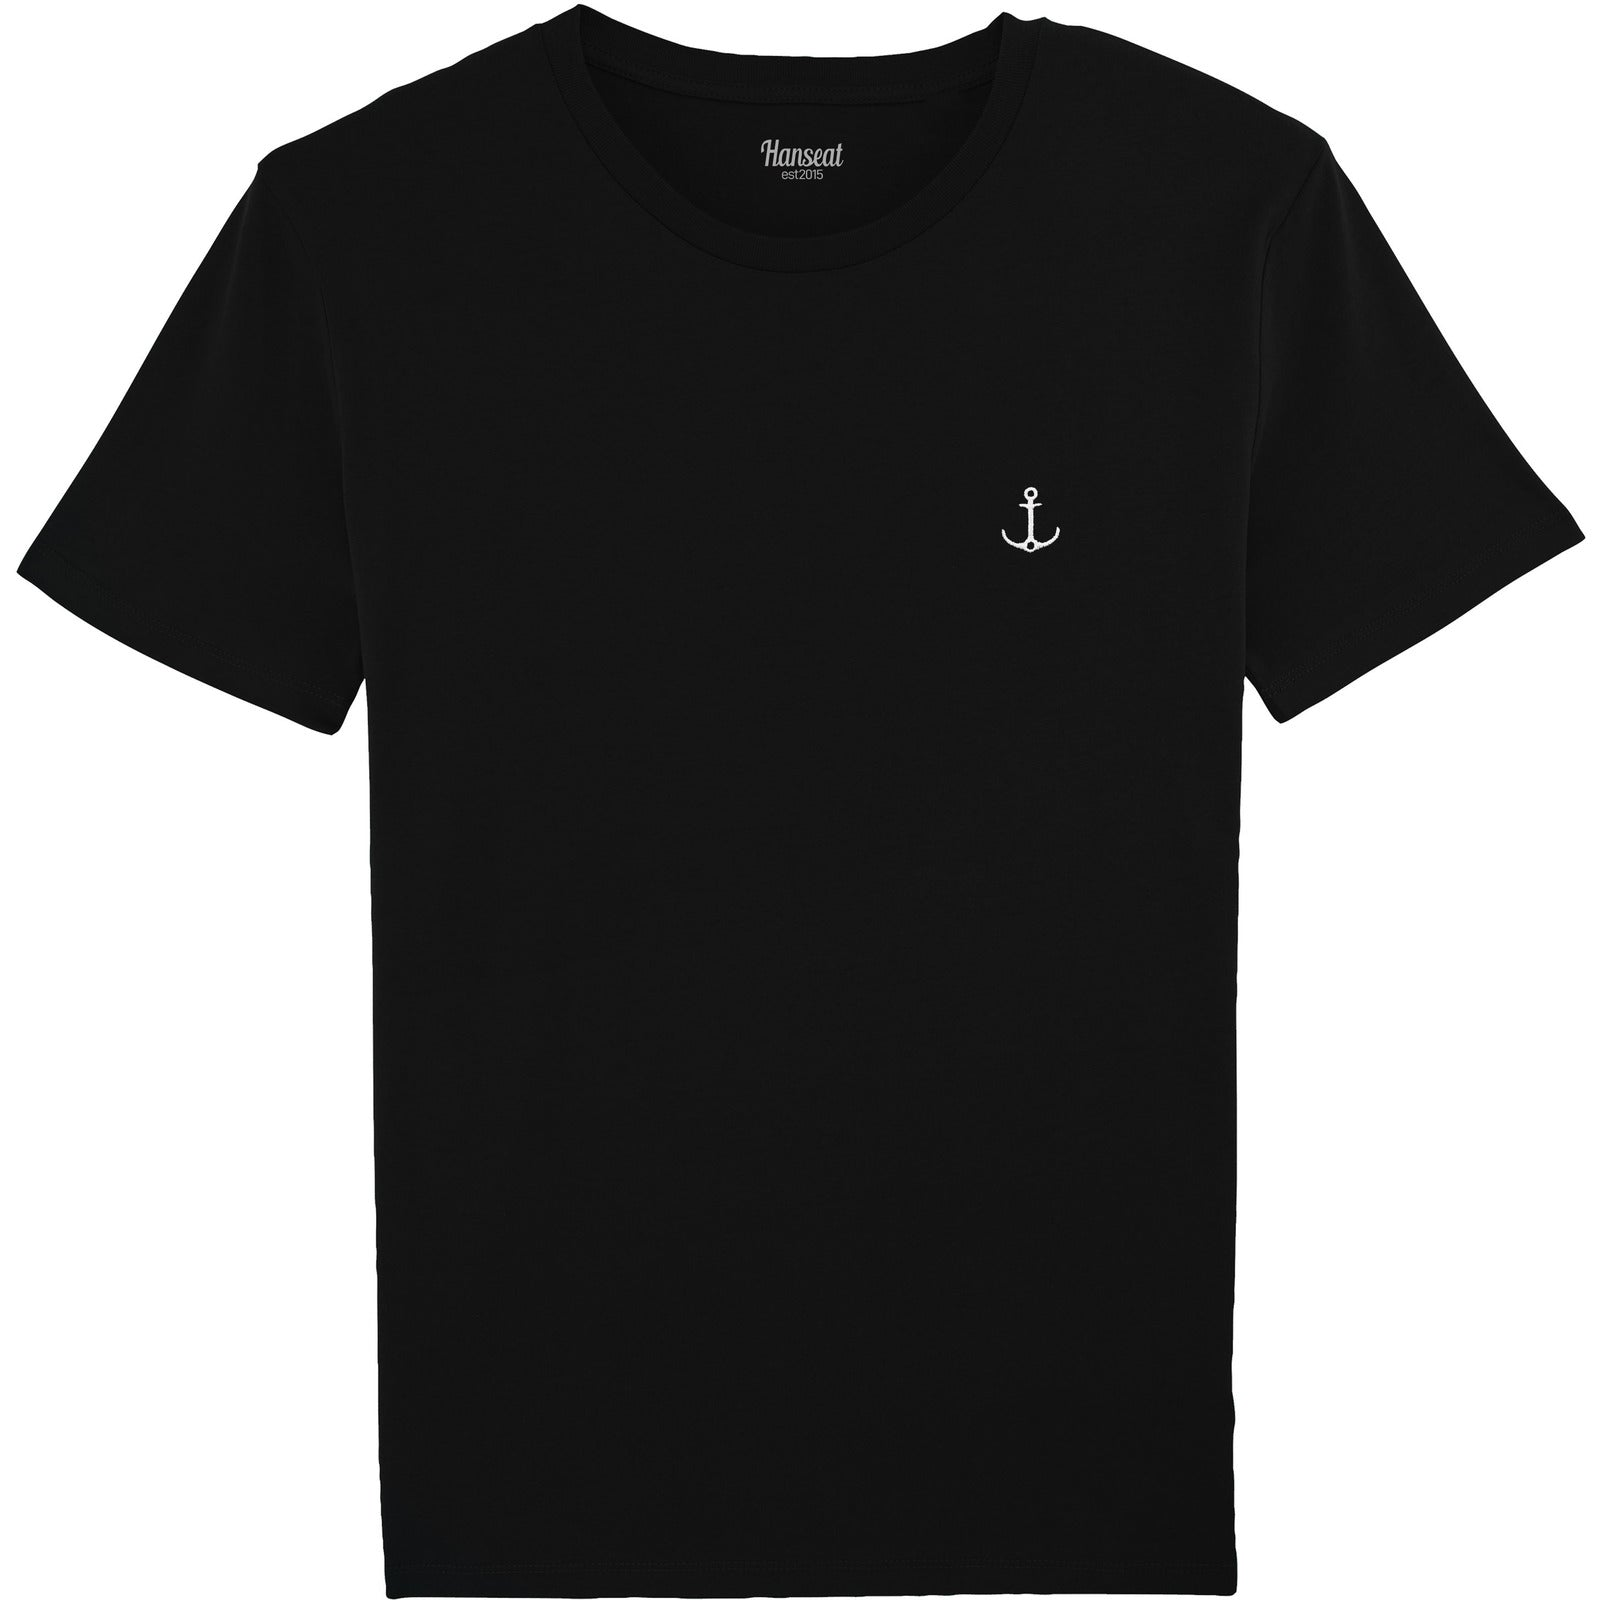 T-SHIRT REGULAR FIT [SCHWARZ] - Hanseat